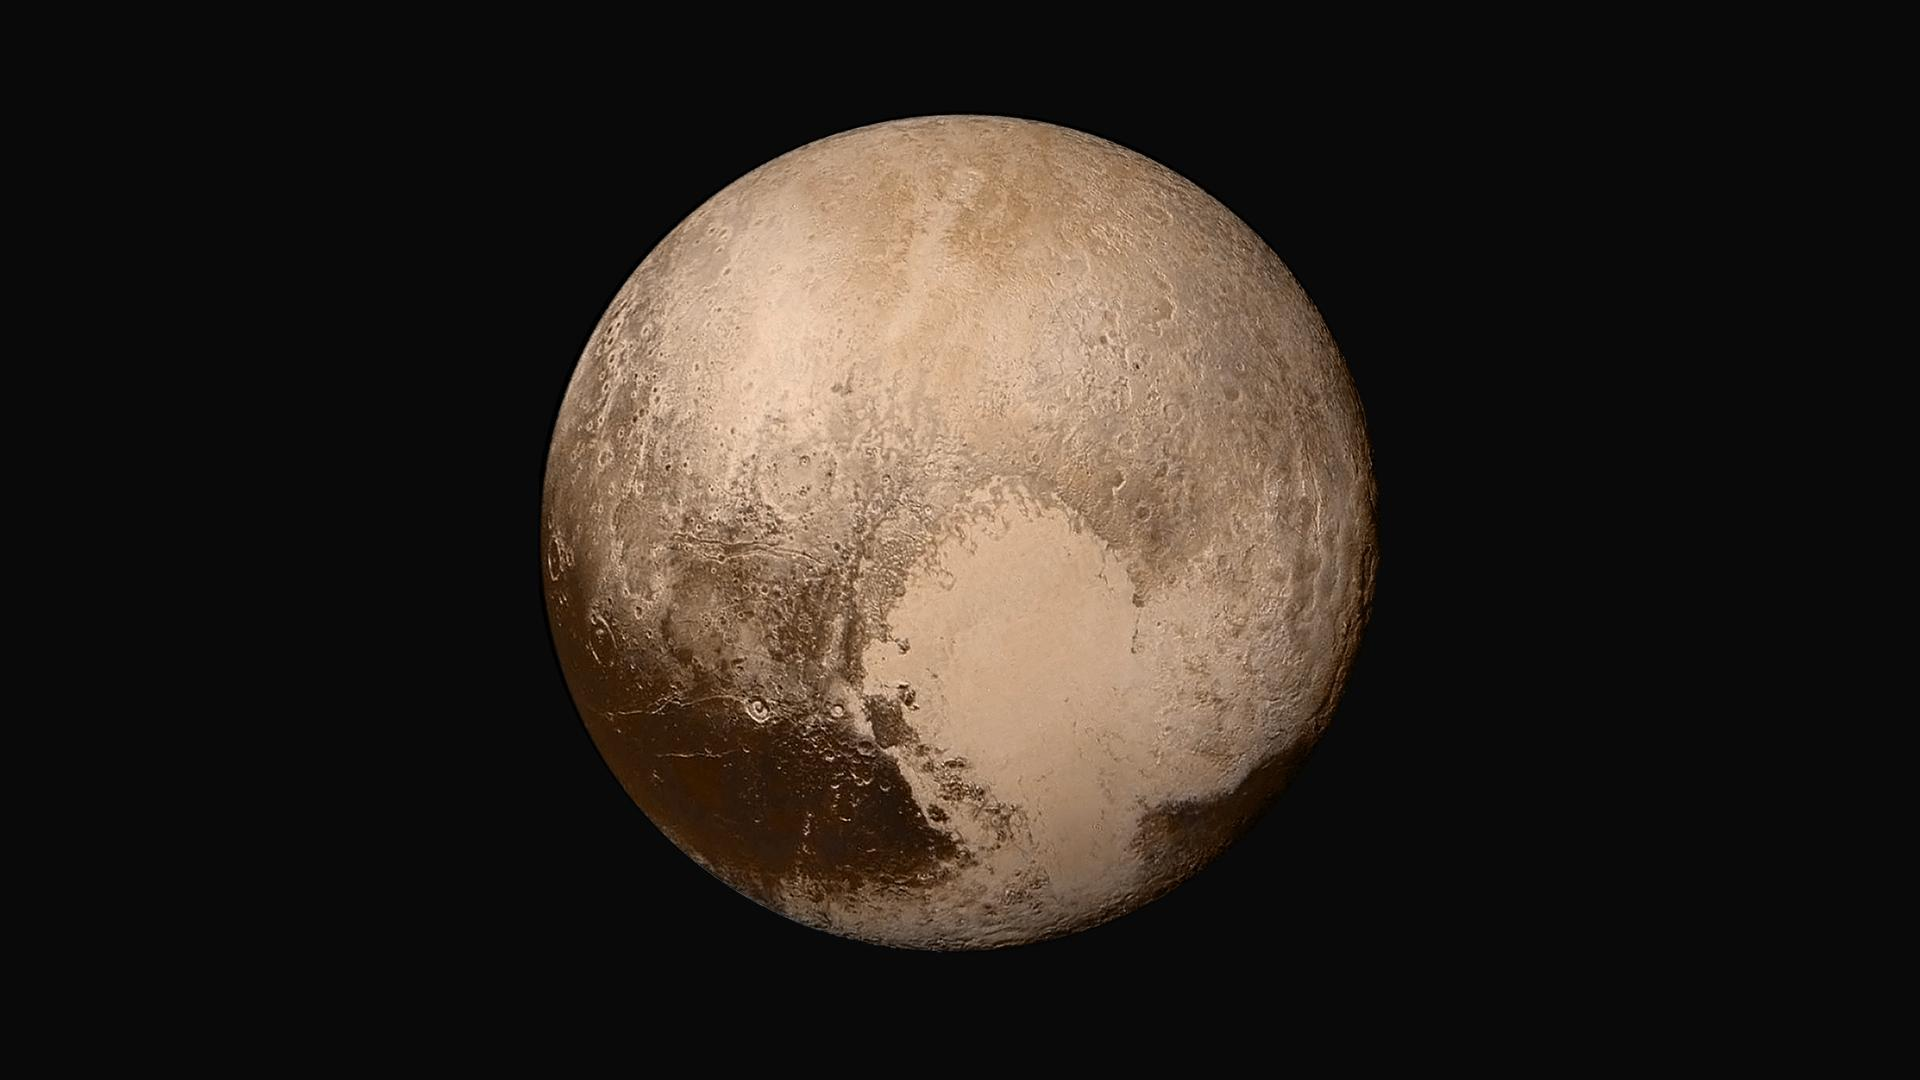 NASA administrator declares Pluto to be a planet once again